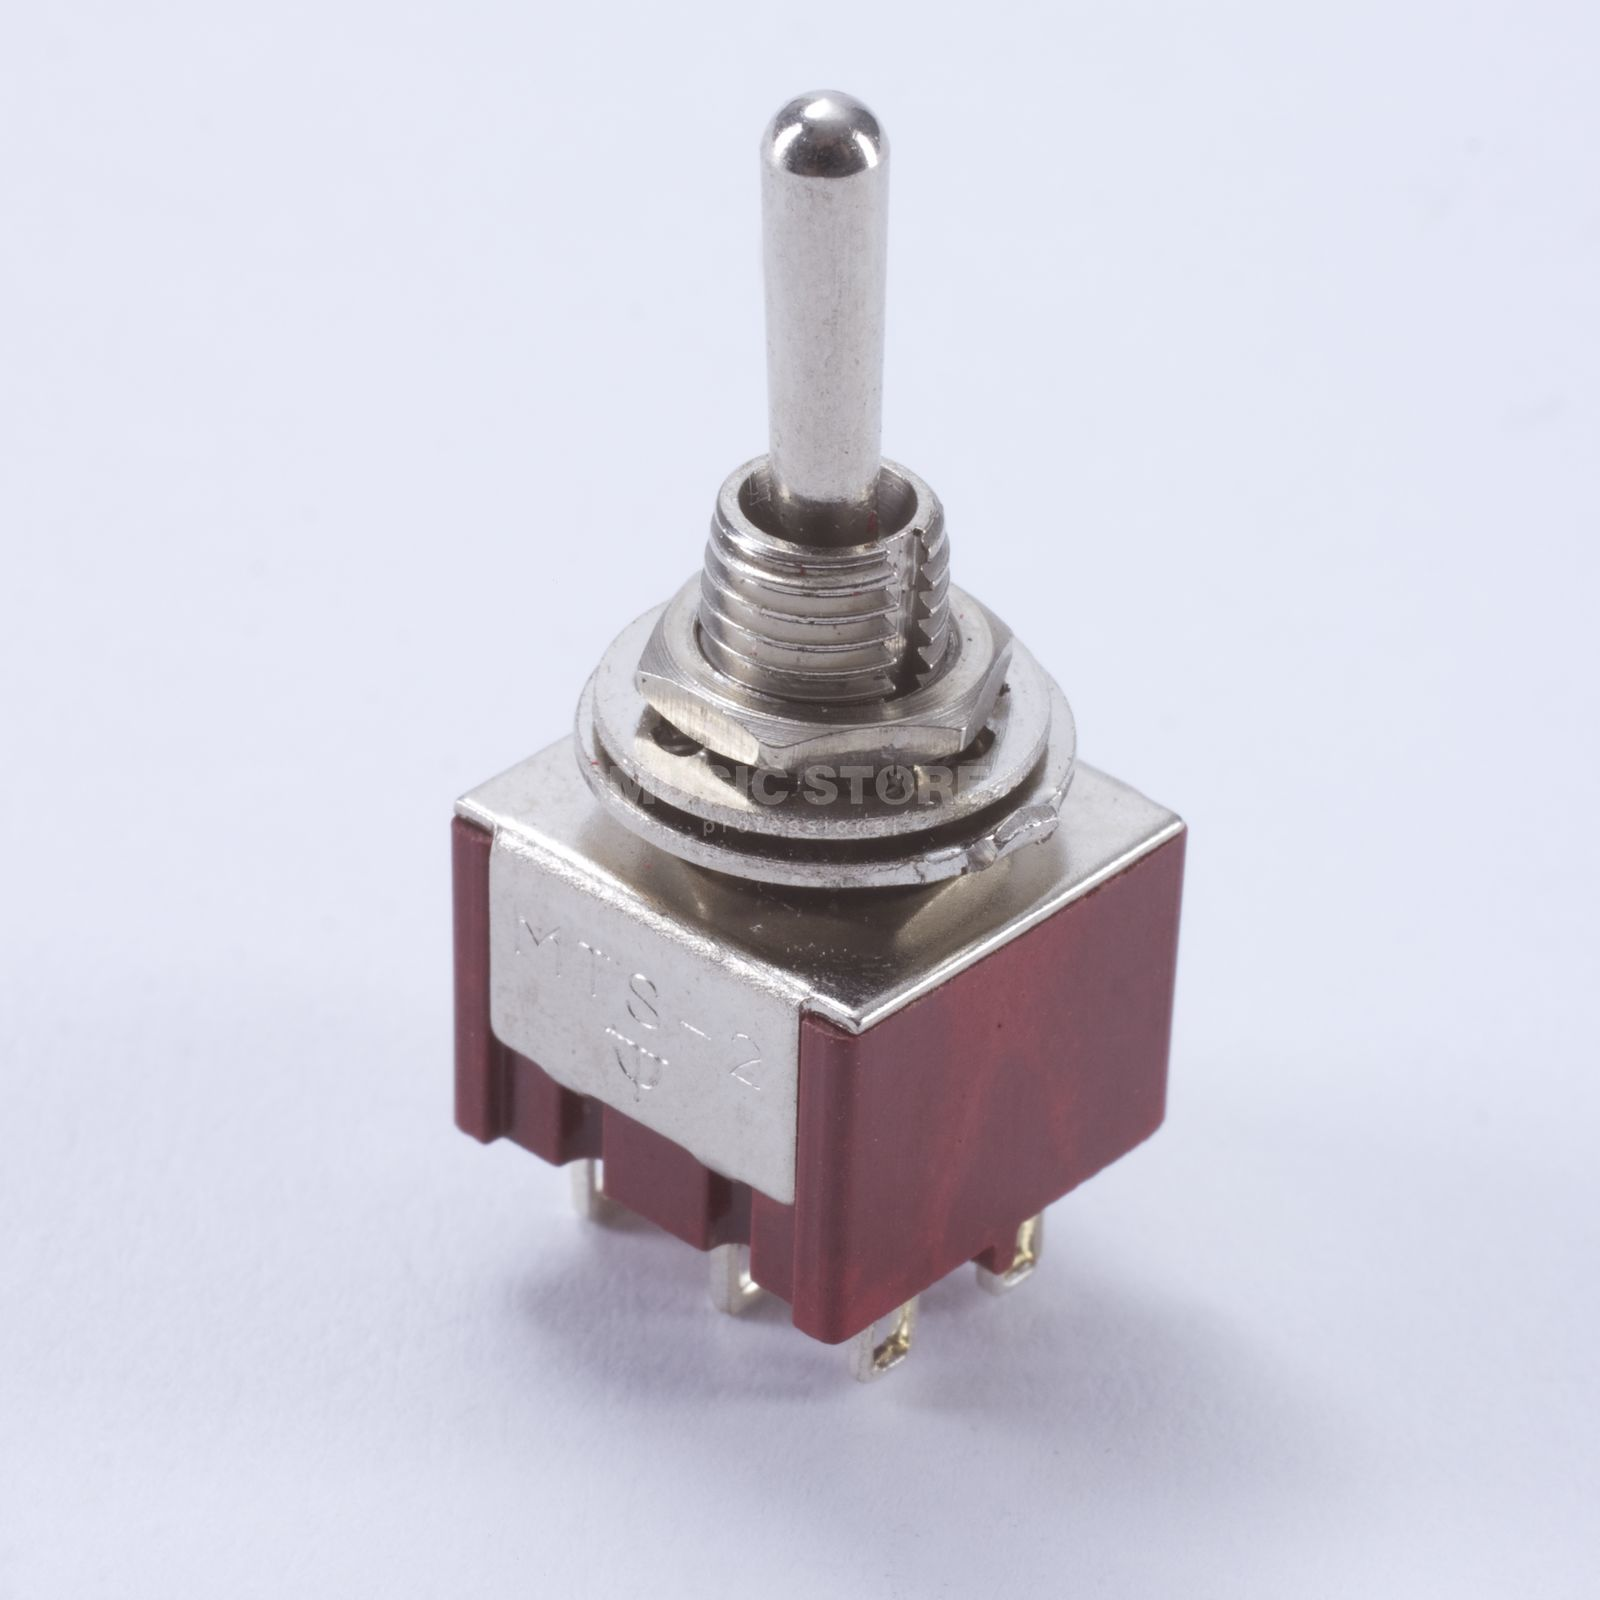 WSC Partsland M305 mini Switch on-on-on 6 pin, chrom, runder Hebel Produktbillede